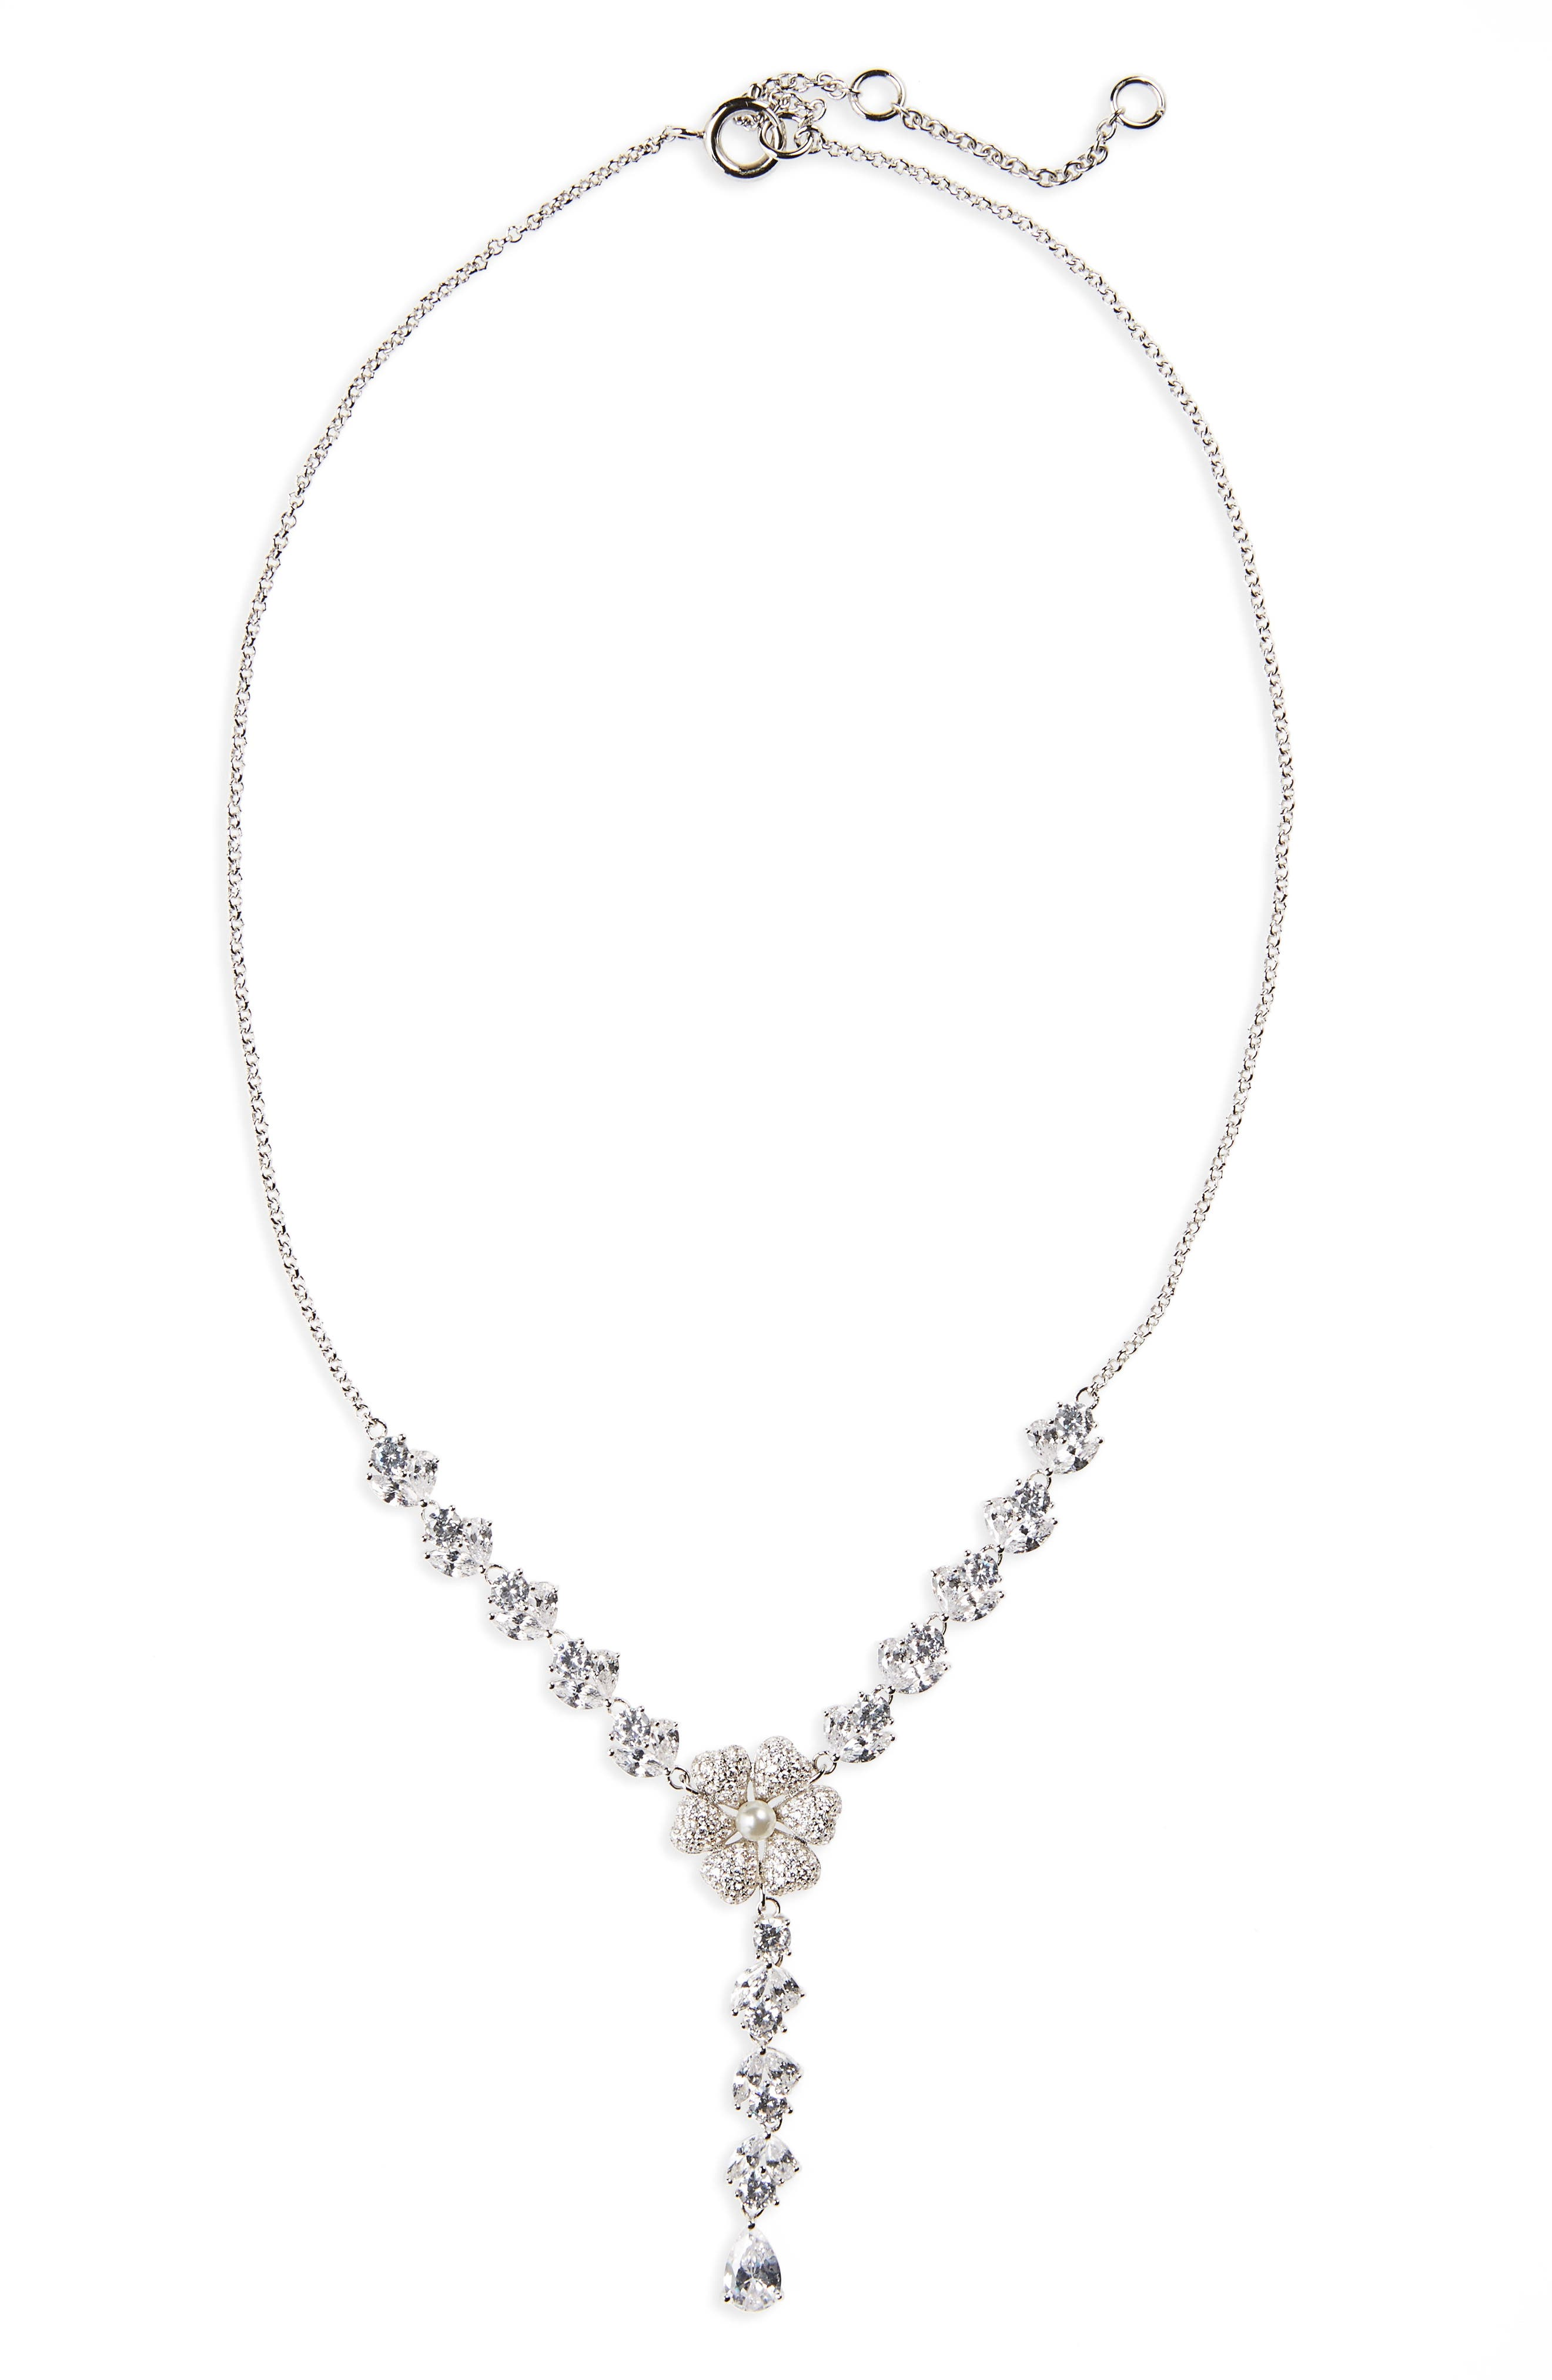 Swarovski Crystal & Imitation Pearl Flower Y-Necklace,                             Main thumbnail 1, color,                             IVORY PEARL / SILVER